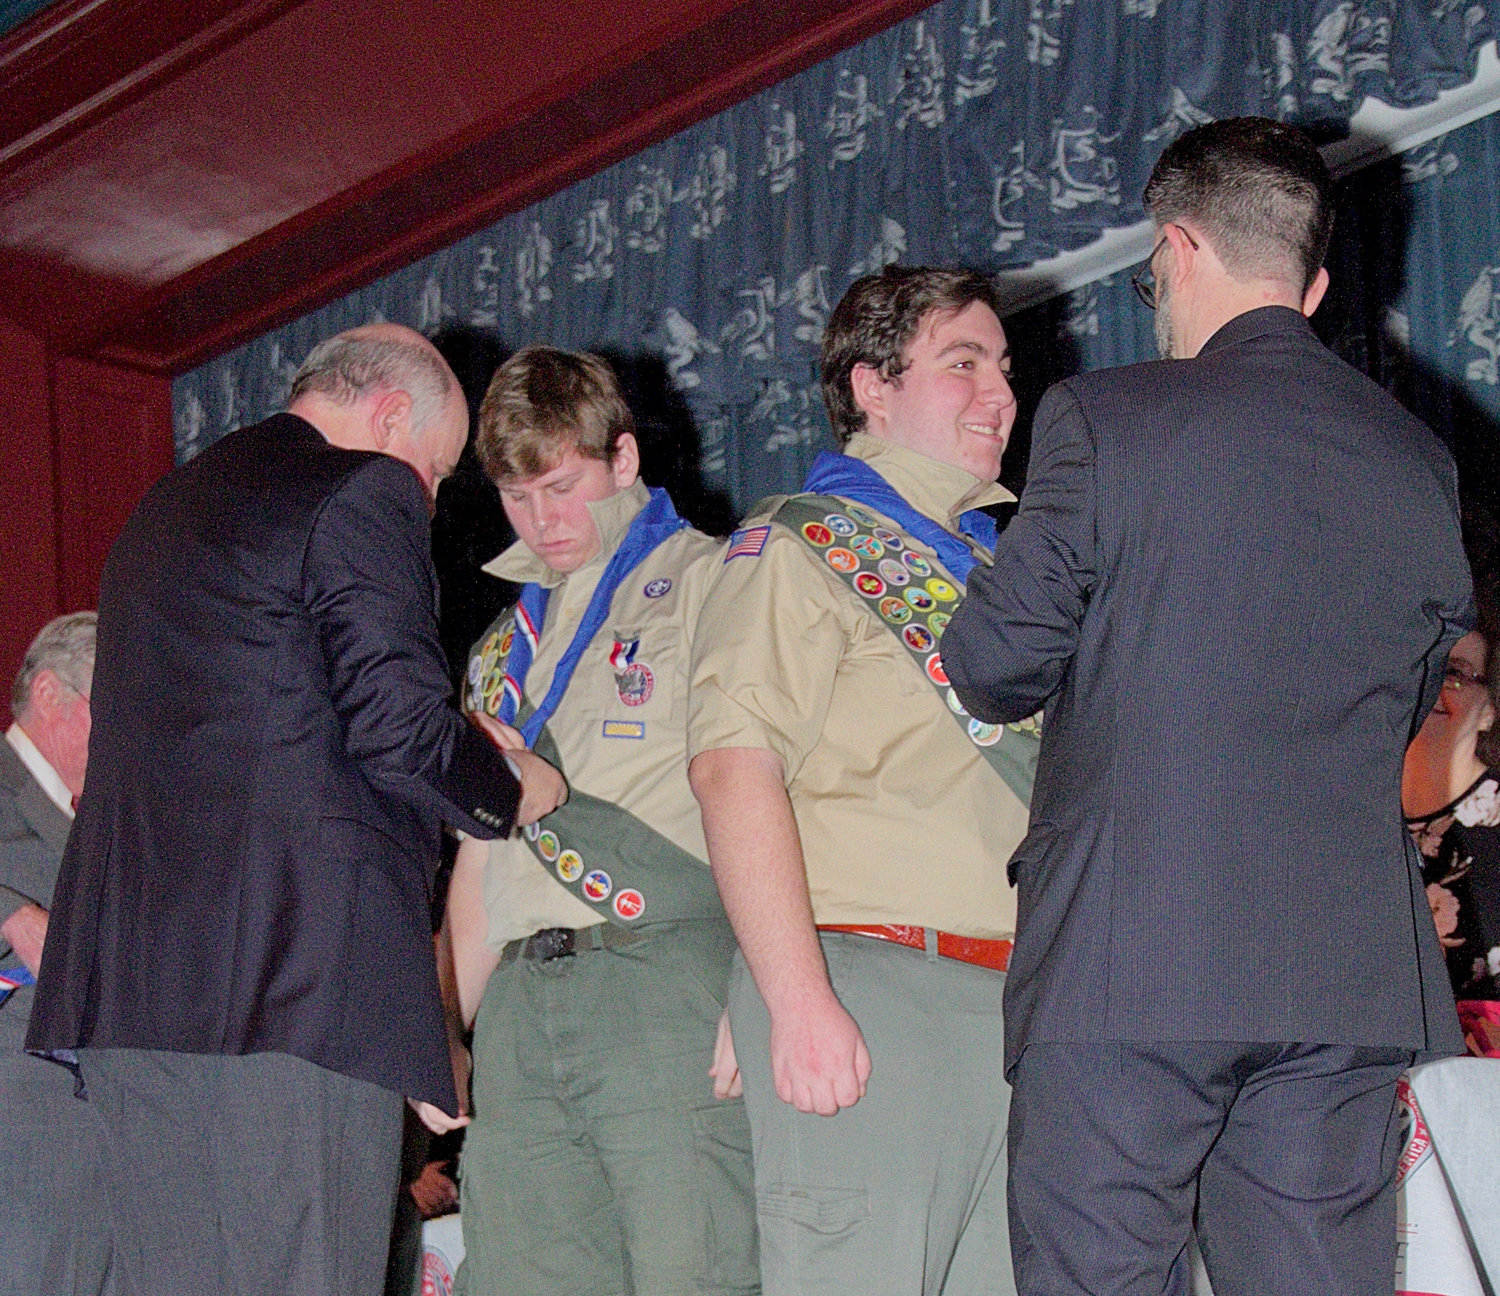 Arthur Johnson, left, helped his son, Kristofer, with his new Eagle Scout neckerchief, as did Jordan Masiakos, with his son, Steven.